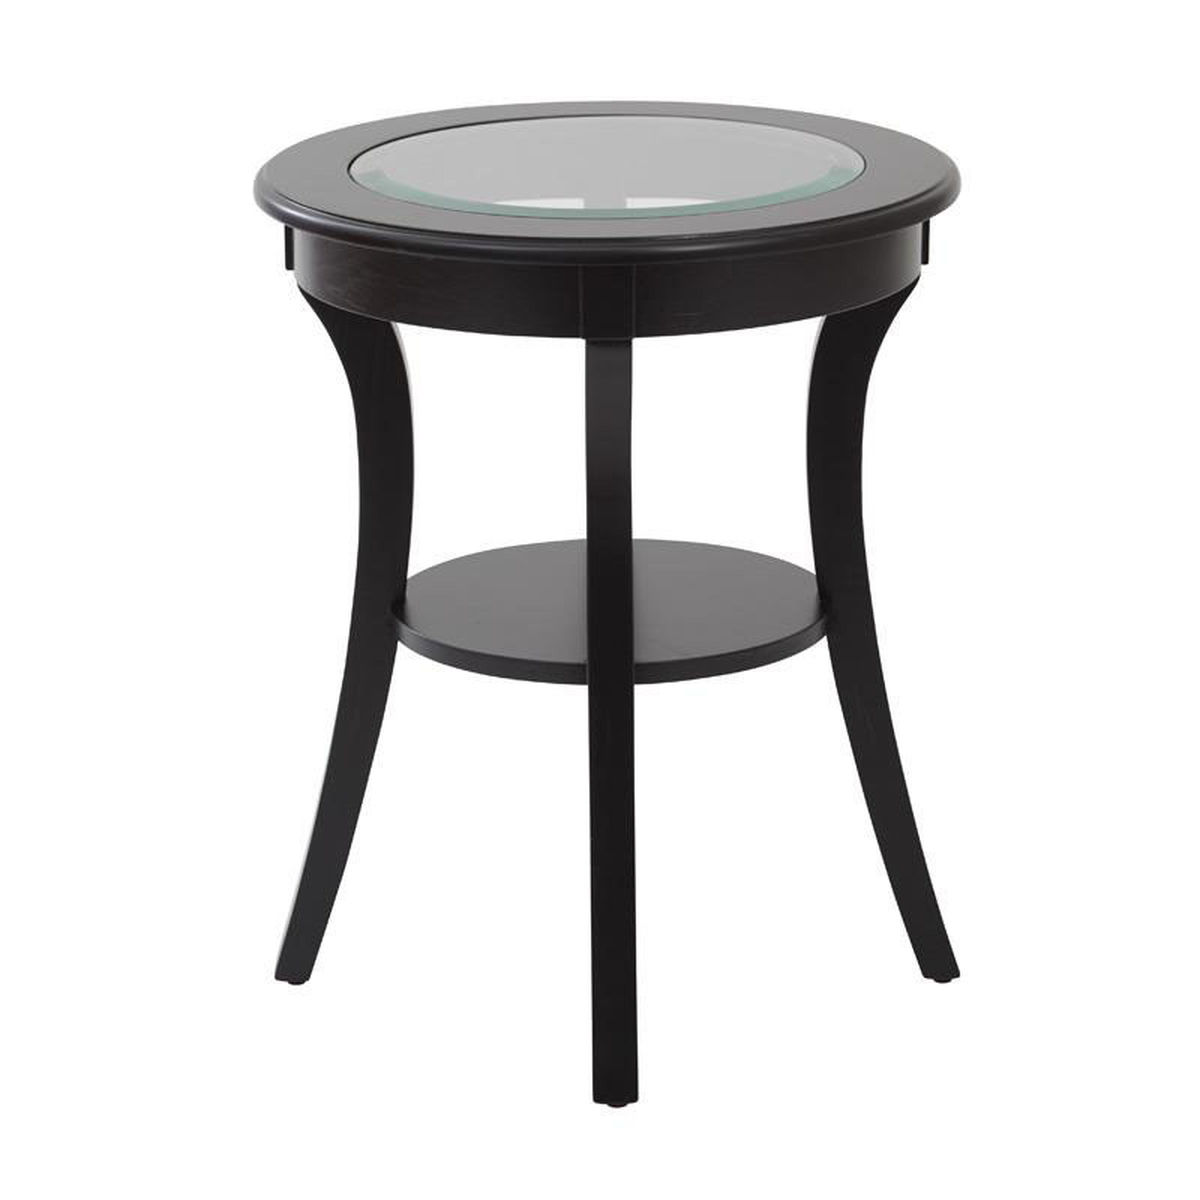 harper black glass accent table bizchair office star products round our osp designs top with wood finish and shelf white lacquer side modern coffee drawers narrow console shelves